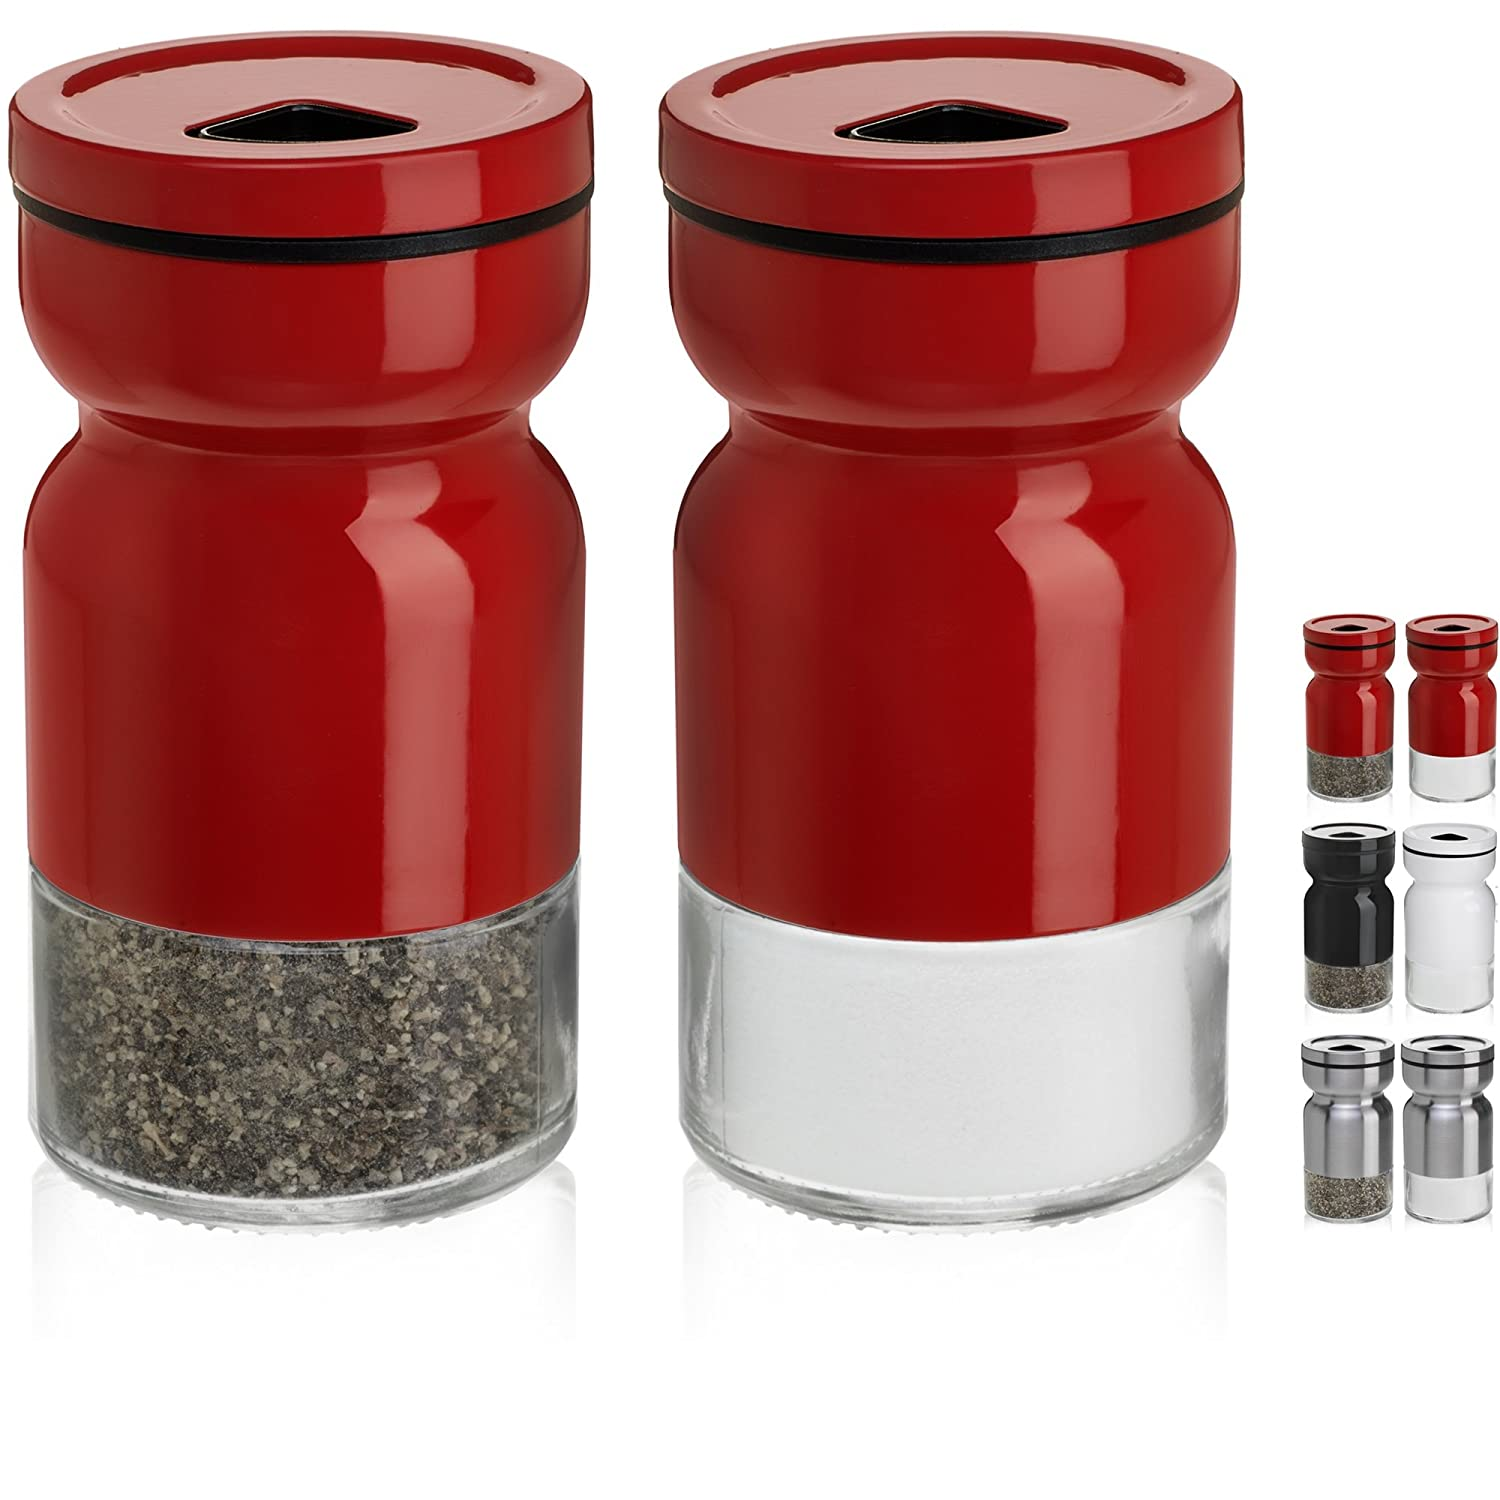 CHEFVANTAGE Salt and Pepper Shakers Set with Adjustable Pour Holes - Red MB Lifestyle S02-P16-V2